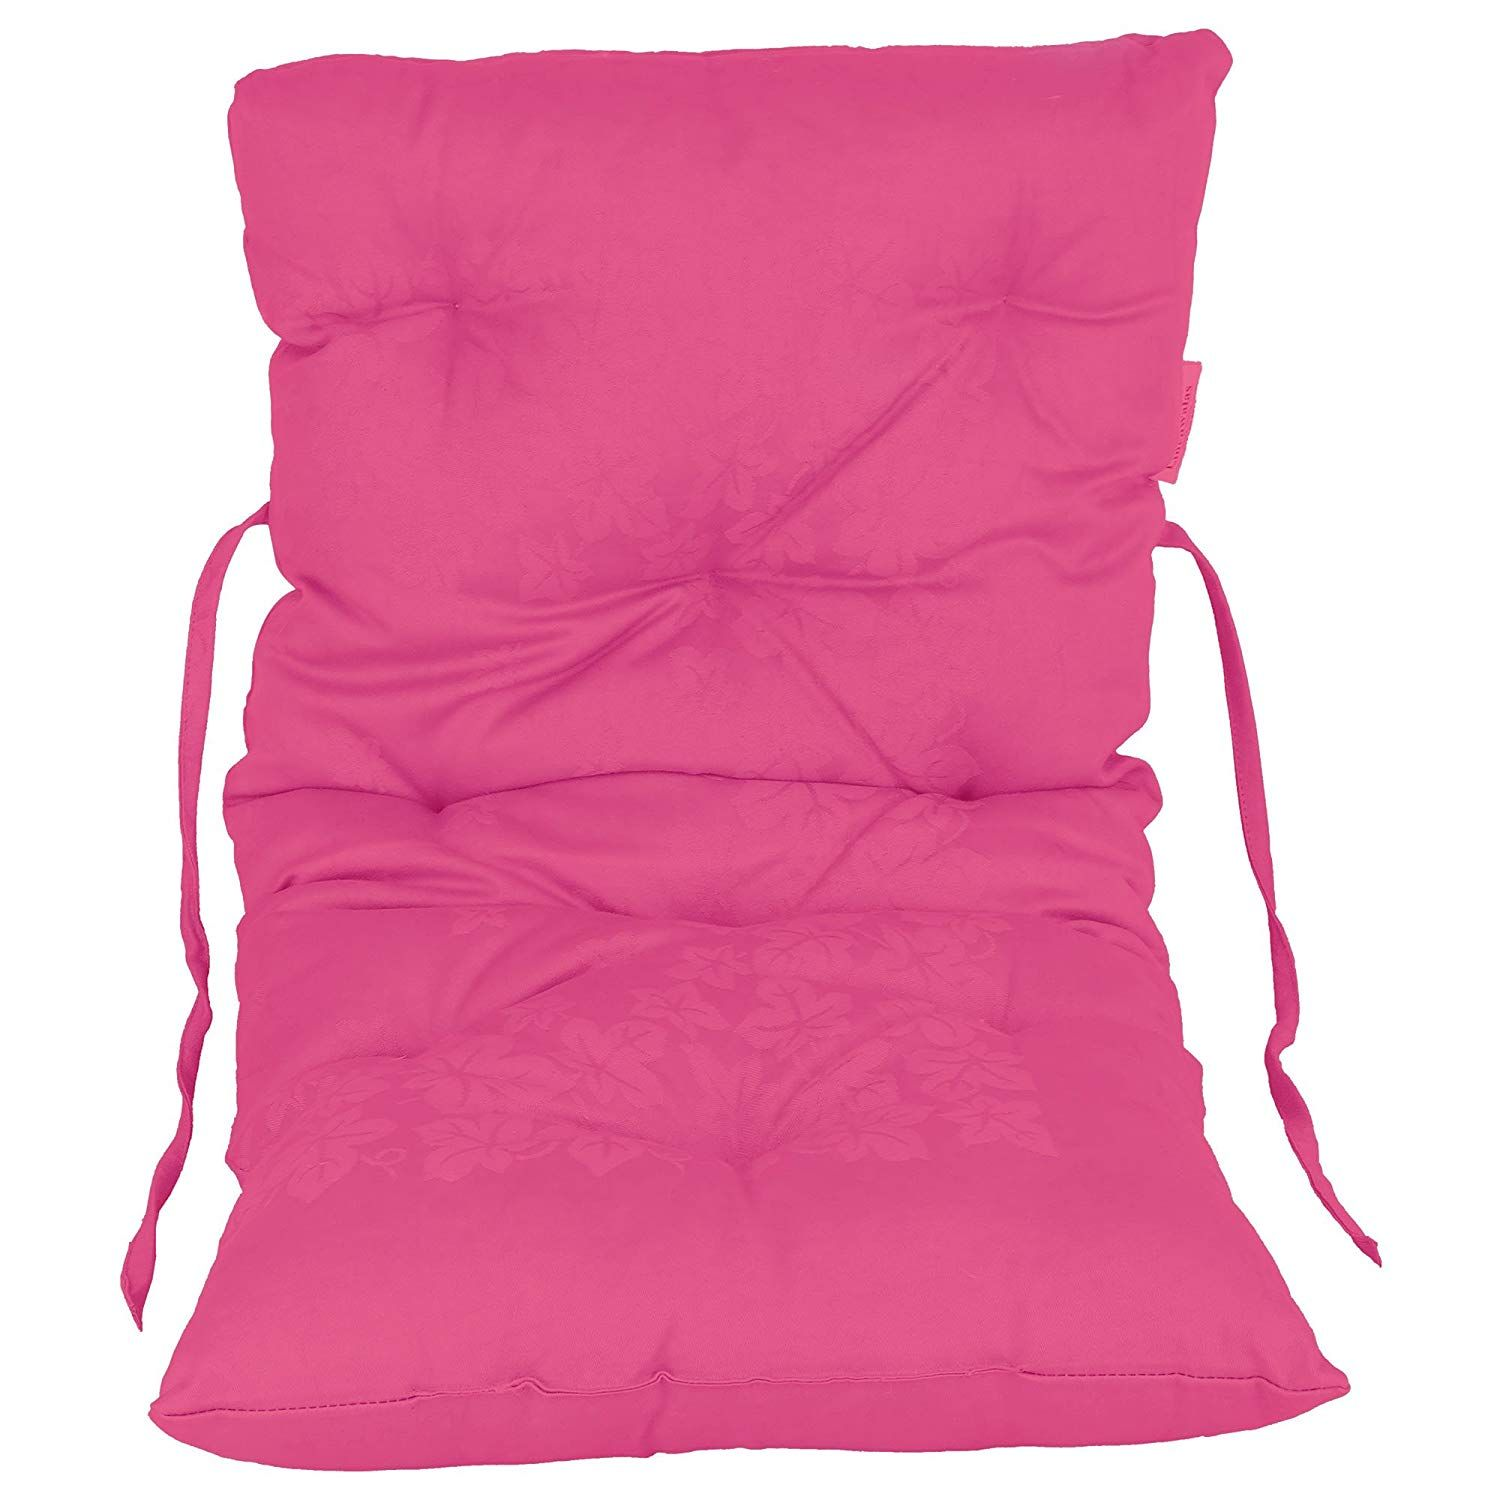 Package Content 1 Pc of back and seat cushion / Jhula pad